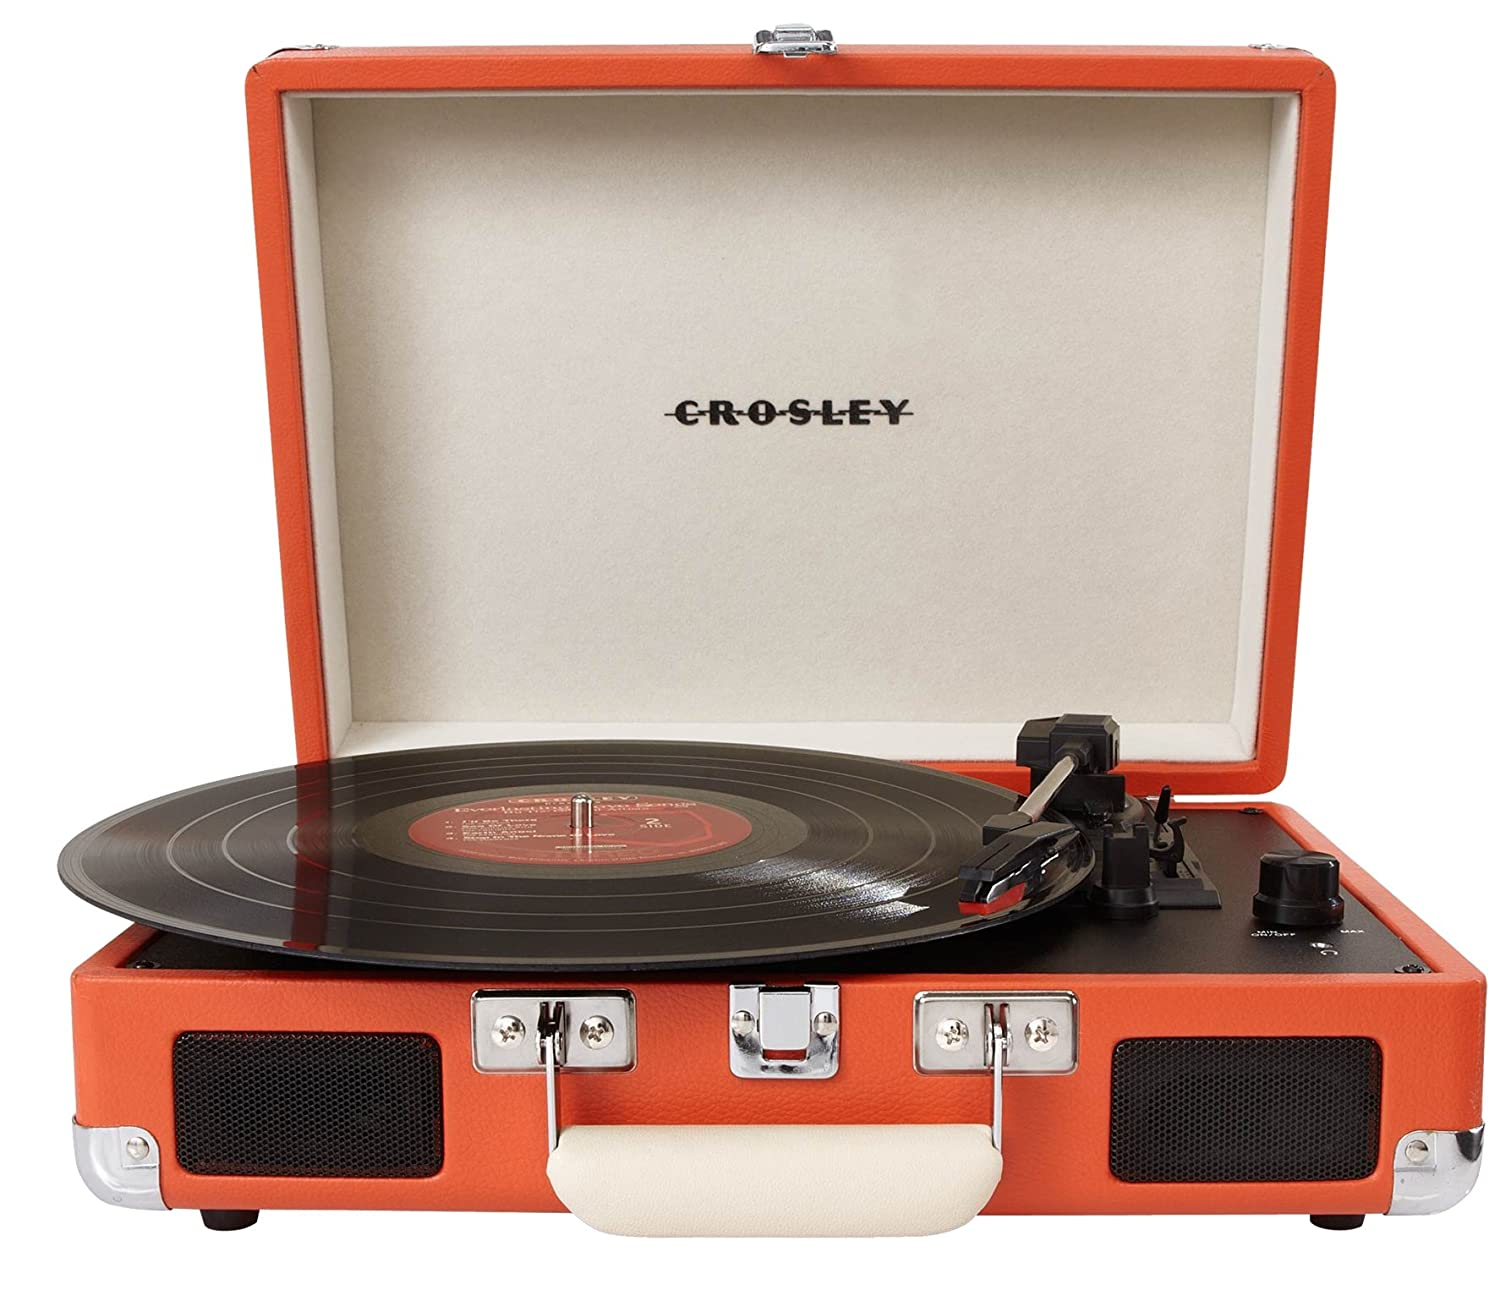 Crosley Cruiser Portable Turntable -Orange